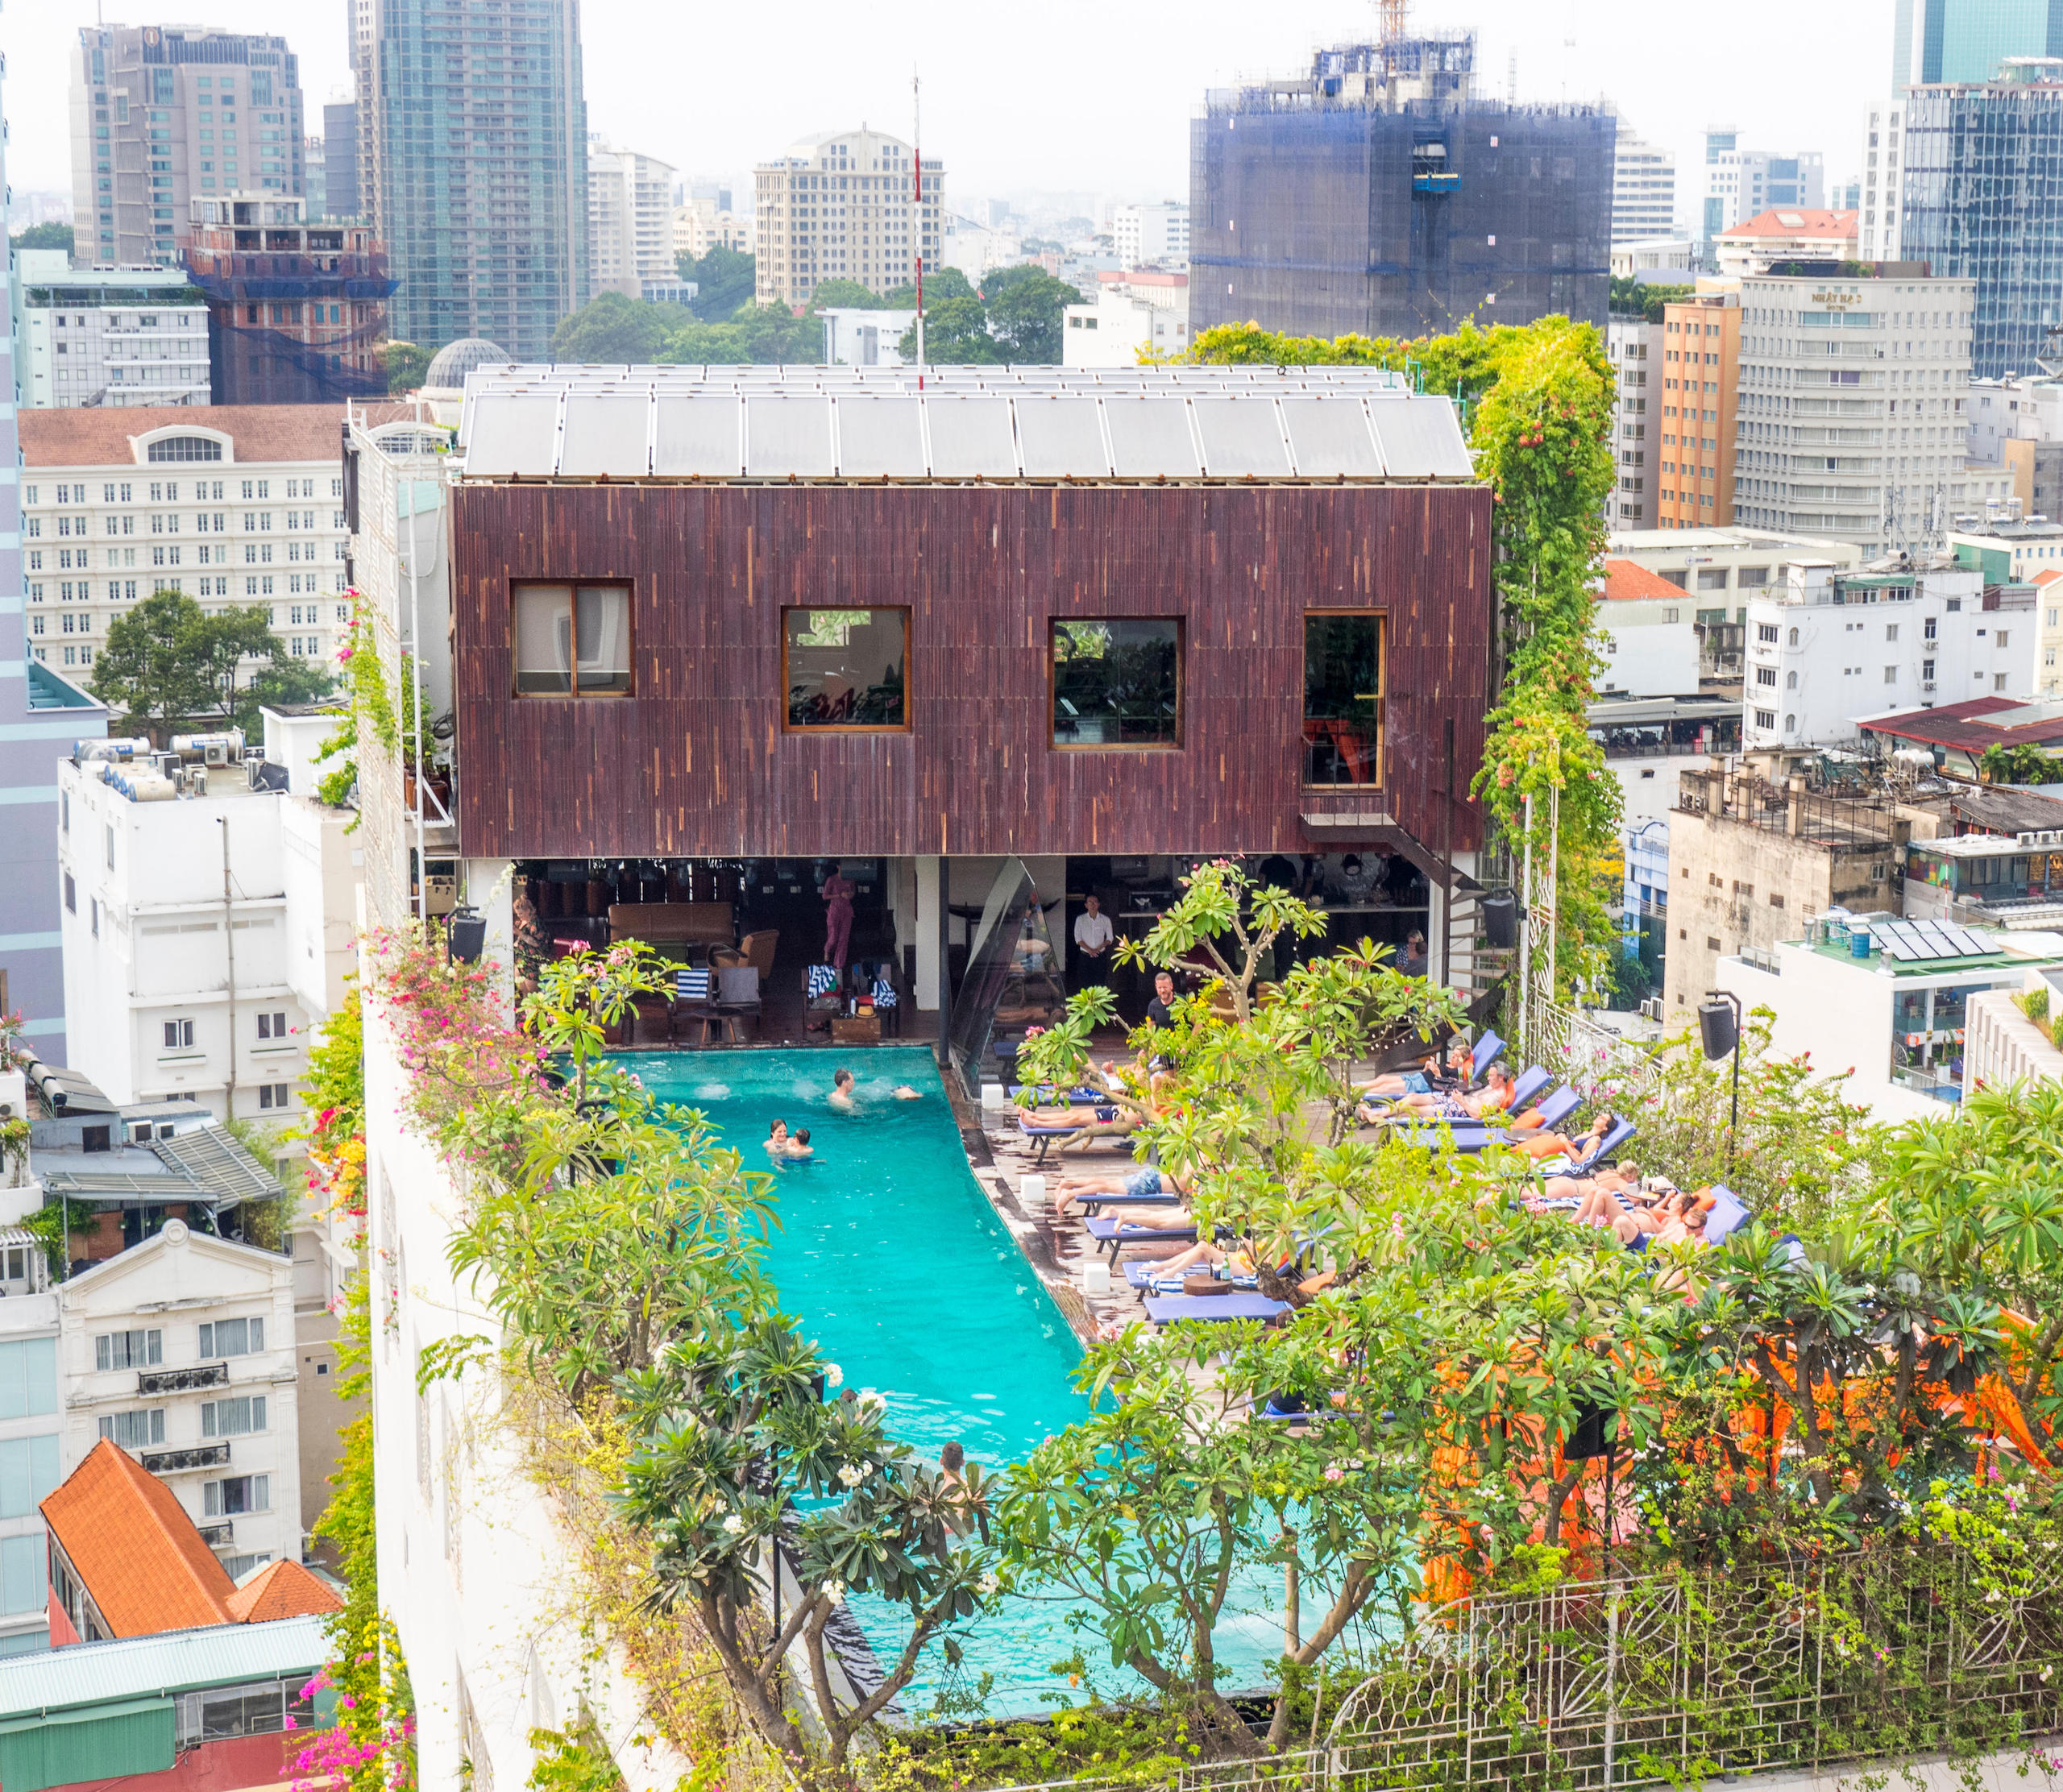 The Myst Dong Khoi Hotel rooftop bar and swimming pool in District 1, Ho Chi Minh City, Vietnam.